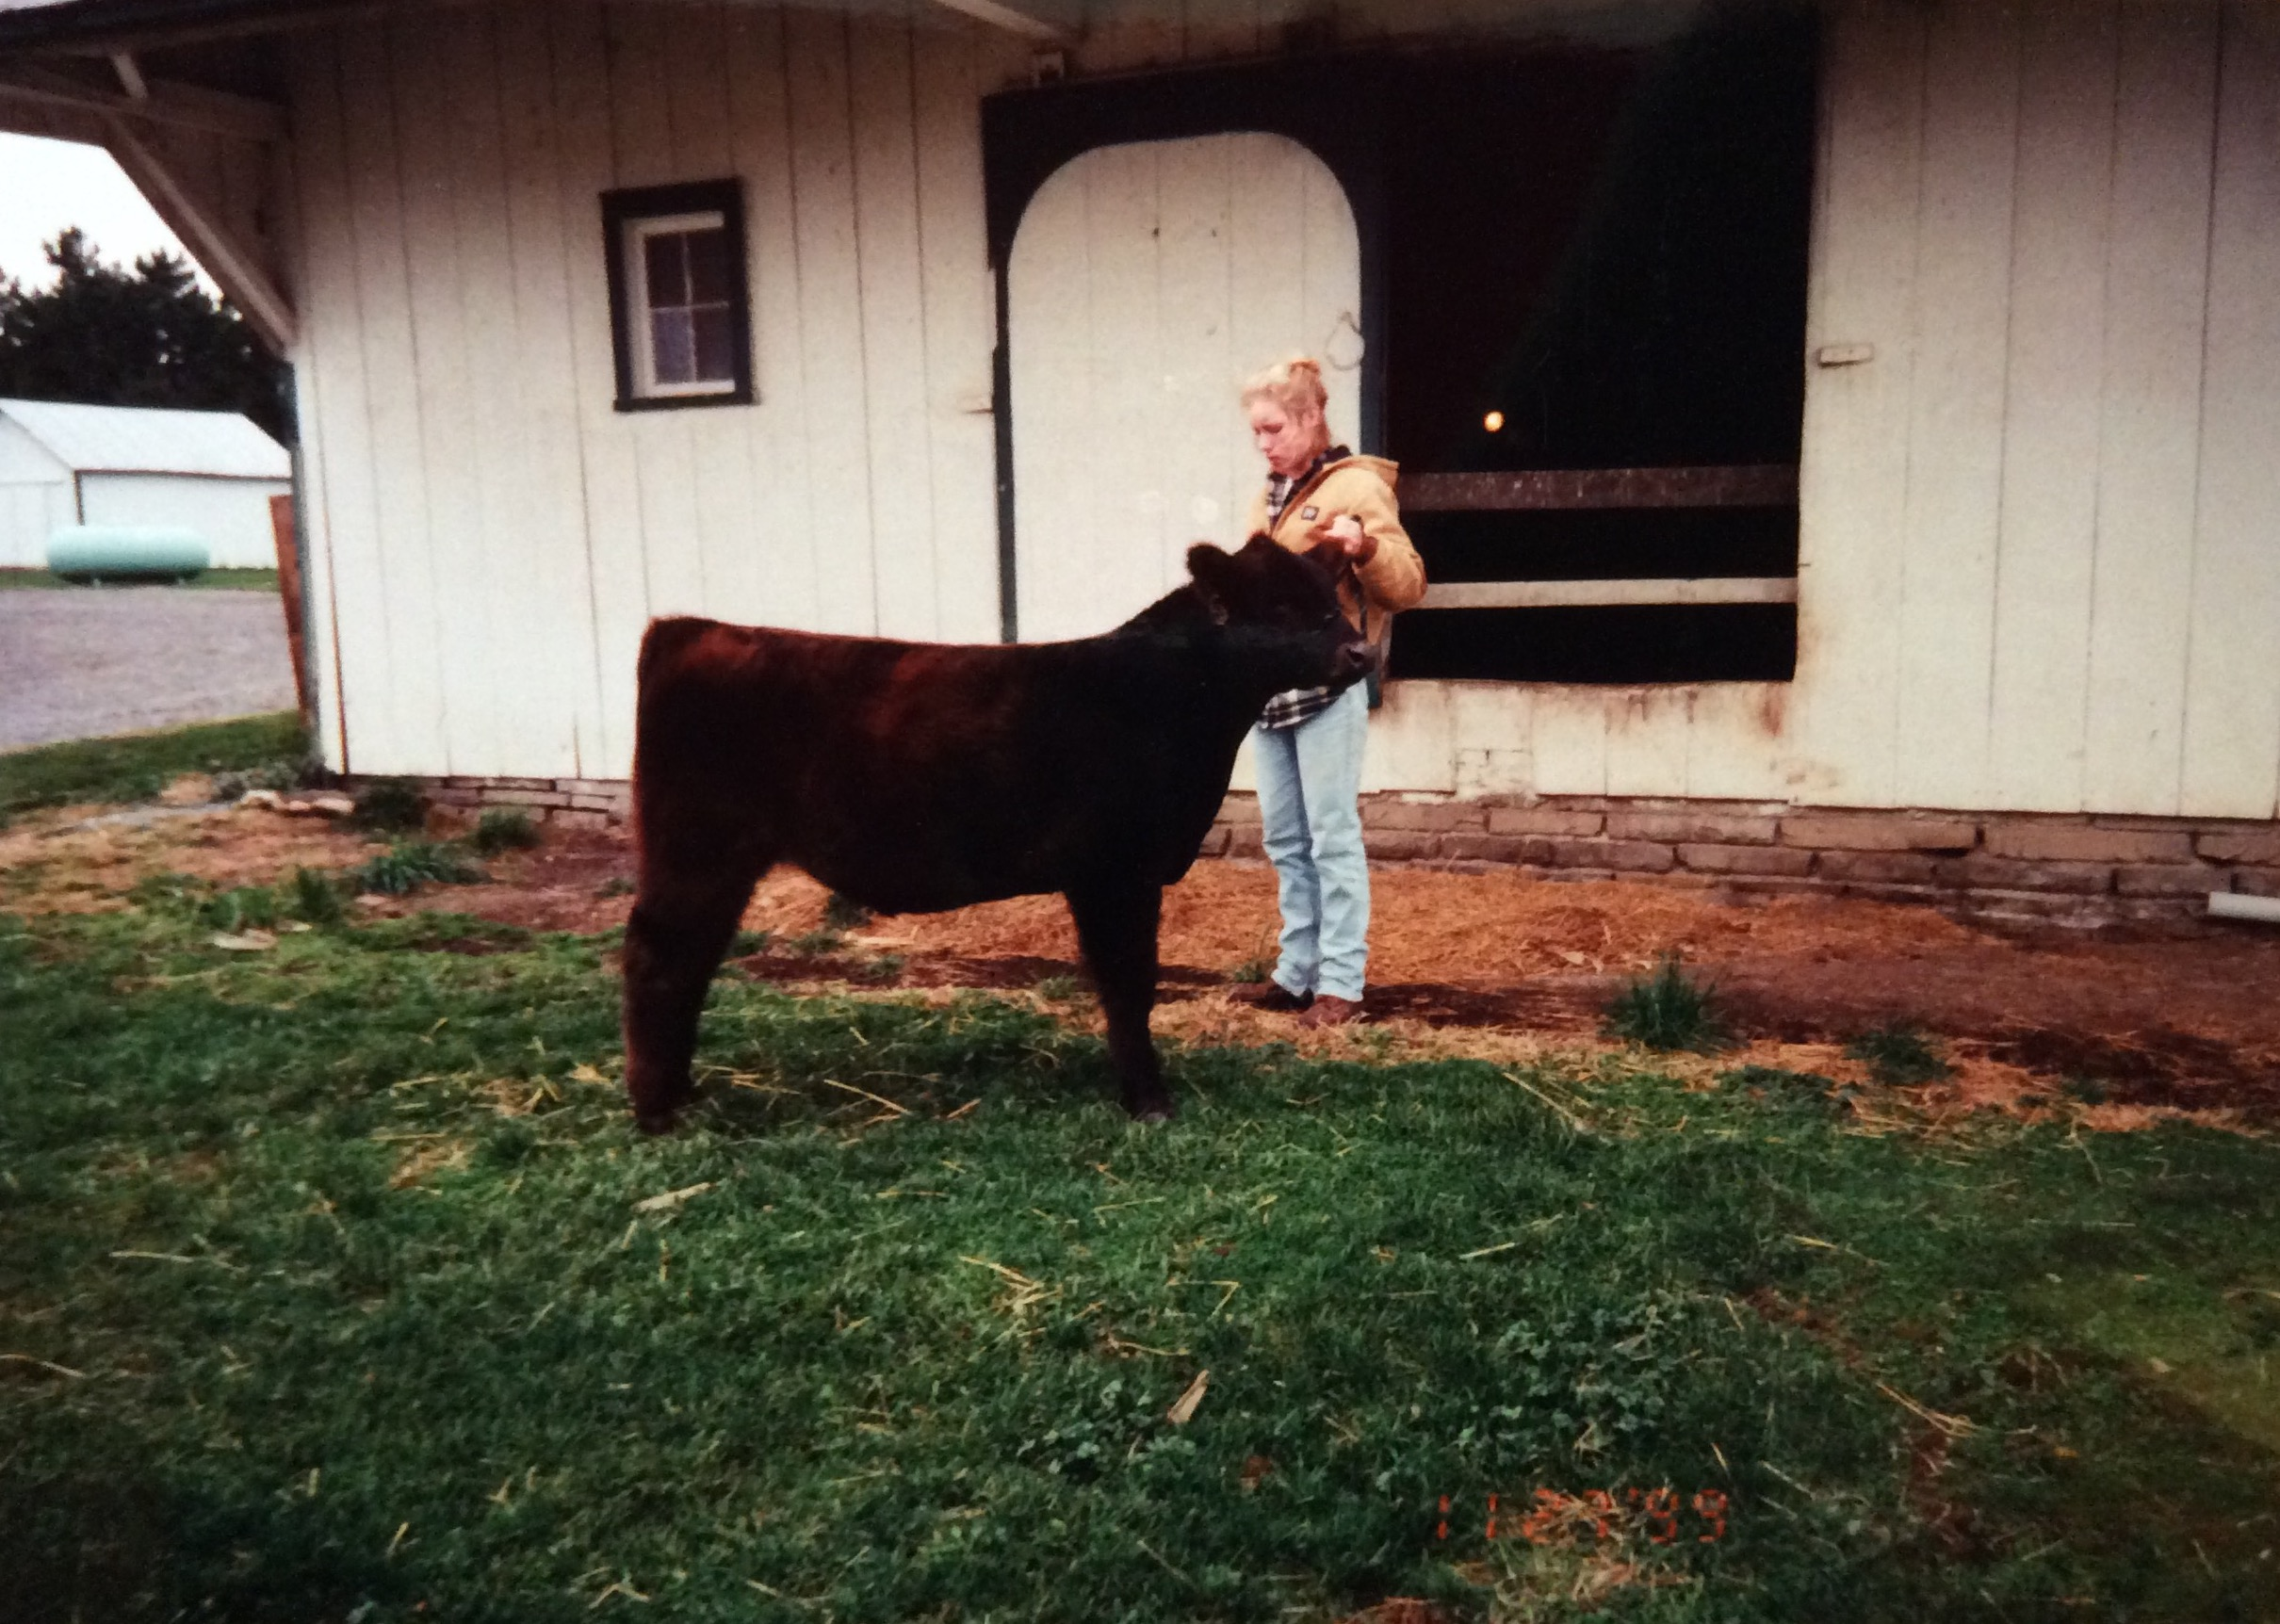 Tigger the Steer and I in front of the barn at my childhood home